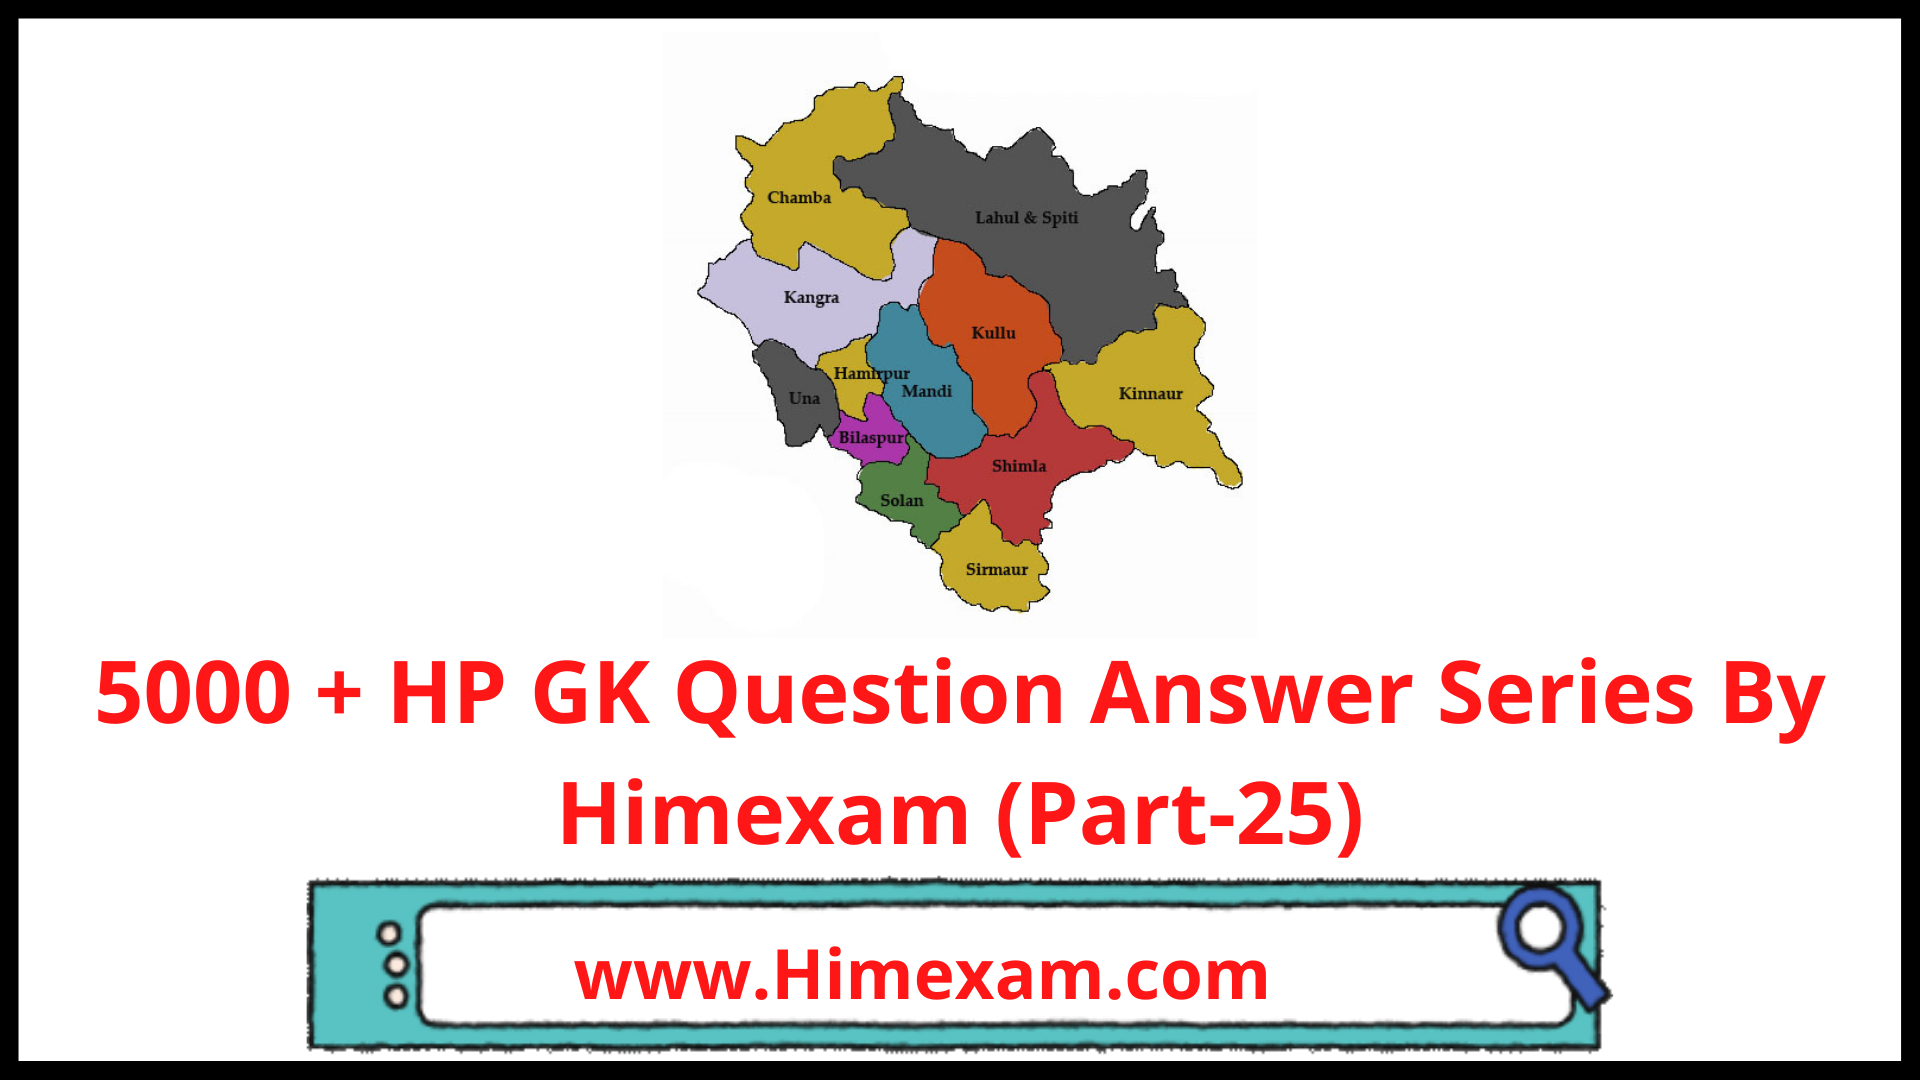 5000 + HP GK Question Answer Series By Himexam (Part-25)